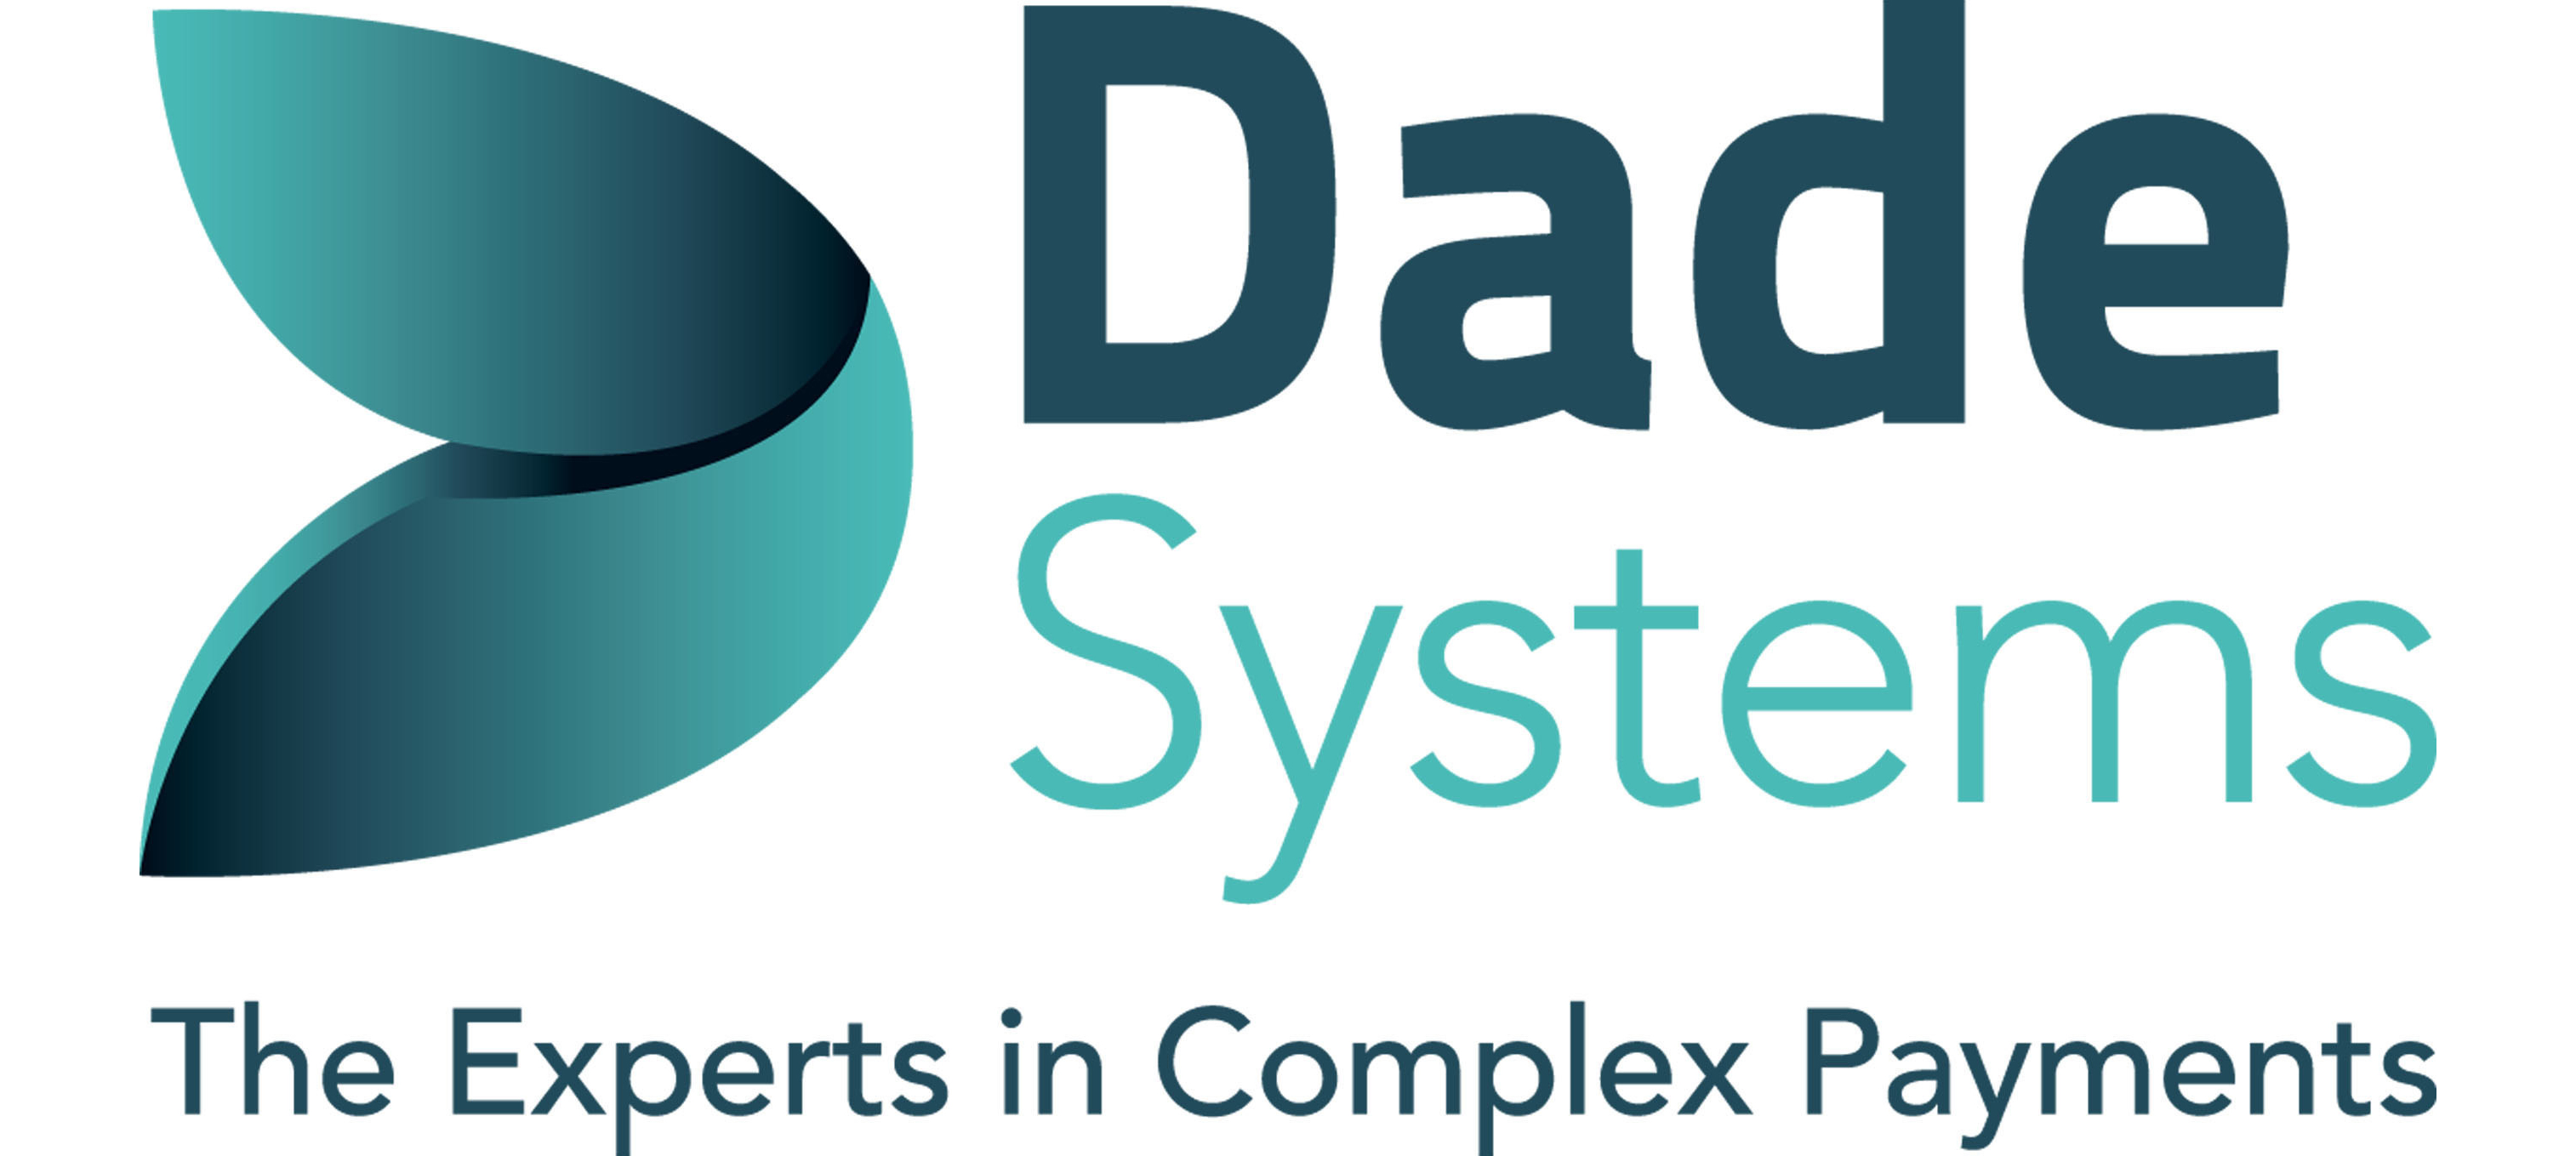 Wells Fargo Makes Strategic Investment in DadeSystems